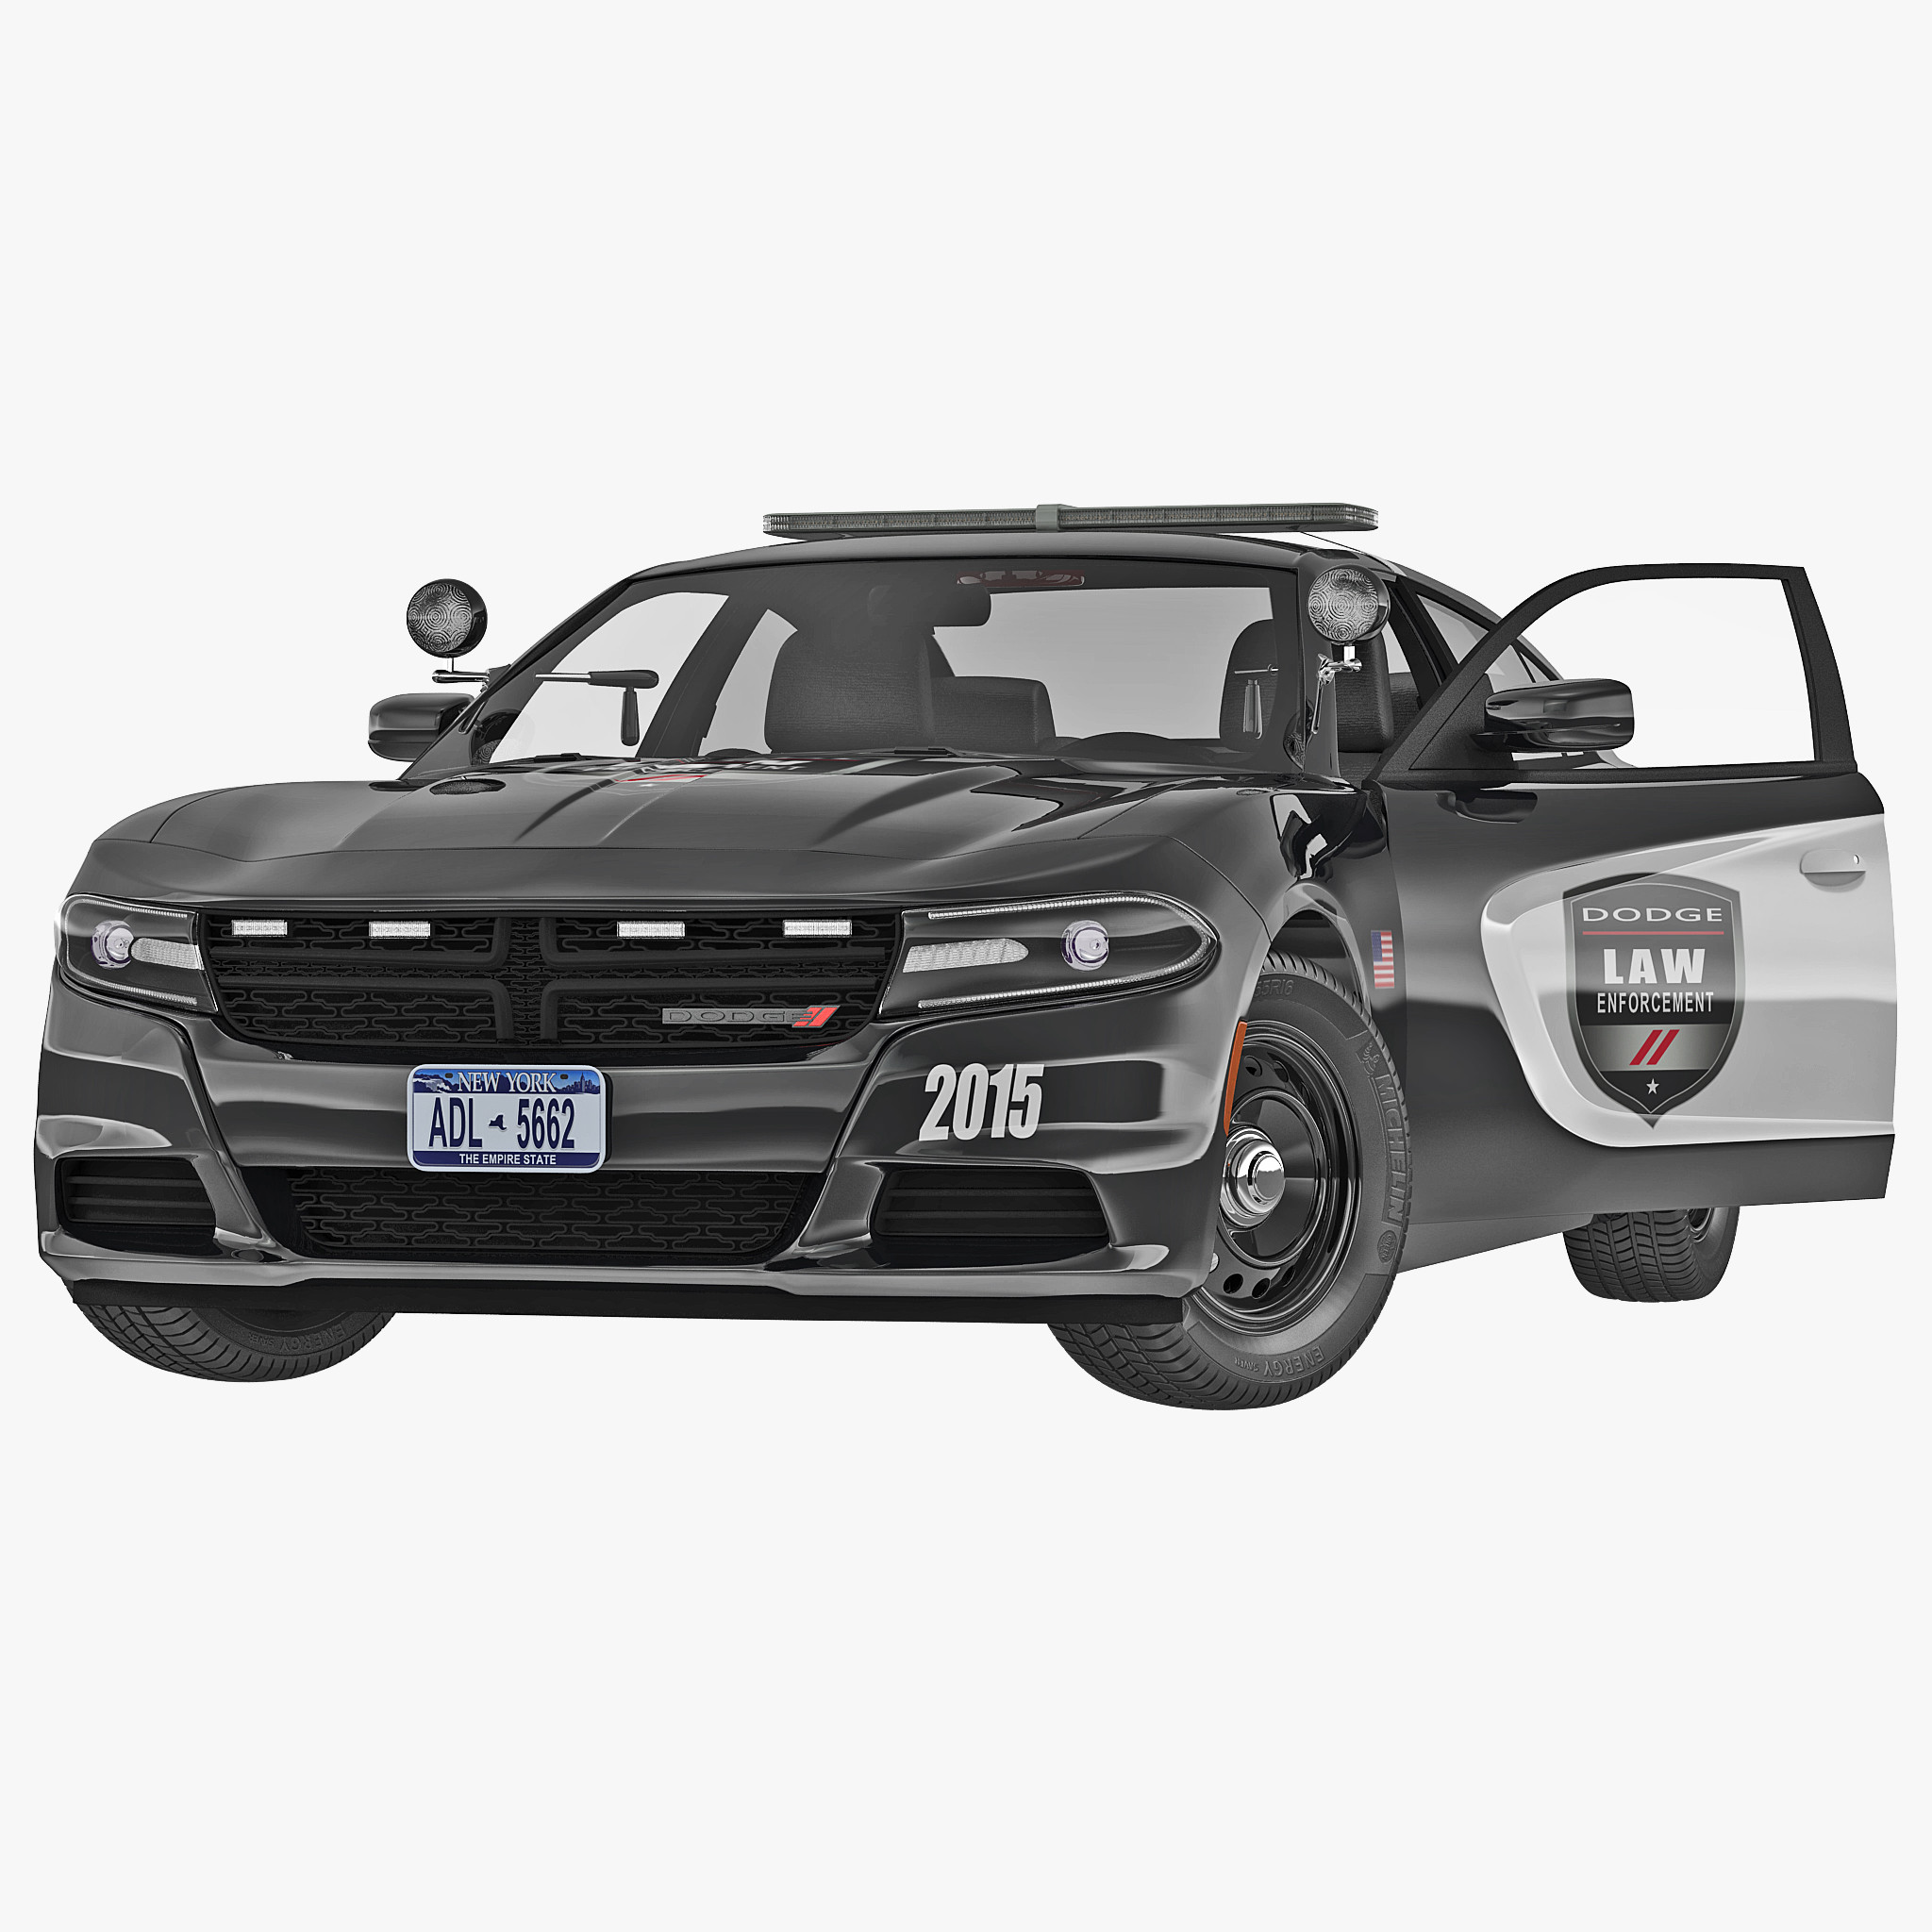 Dodge Charger 2015 Police Car Rigged